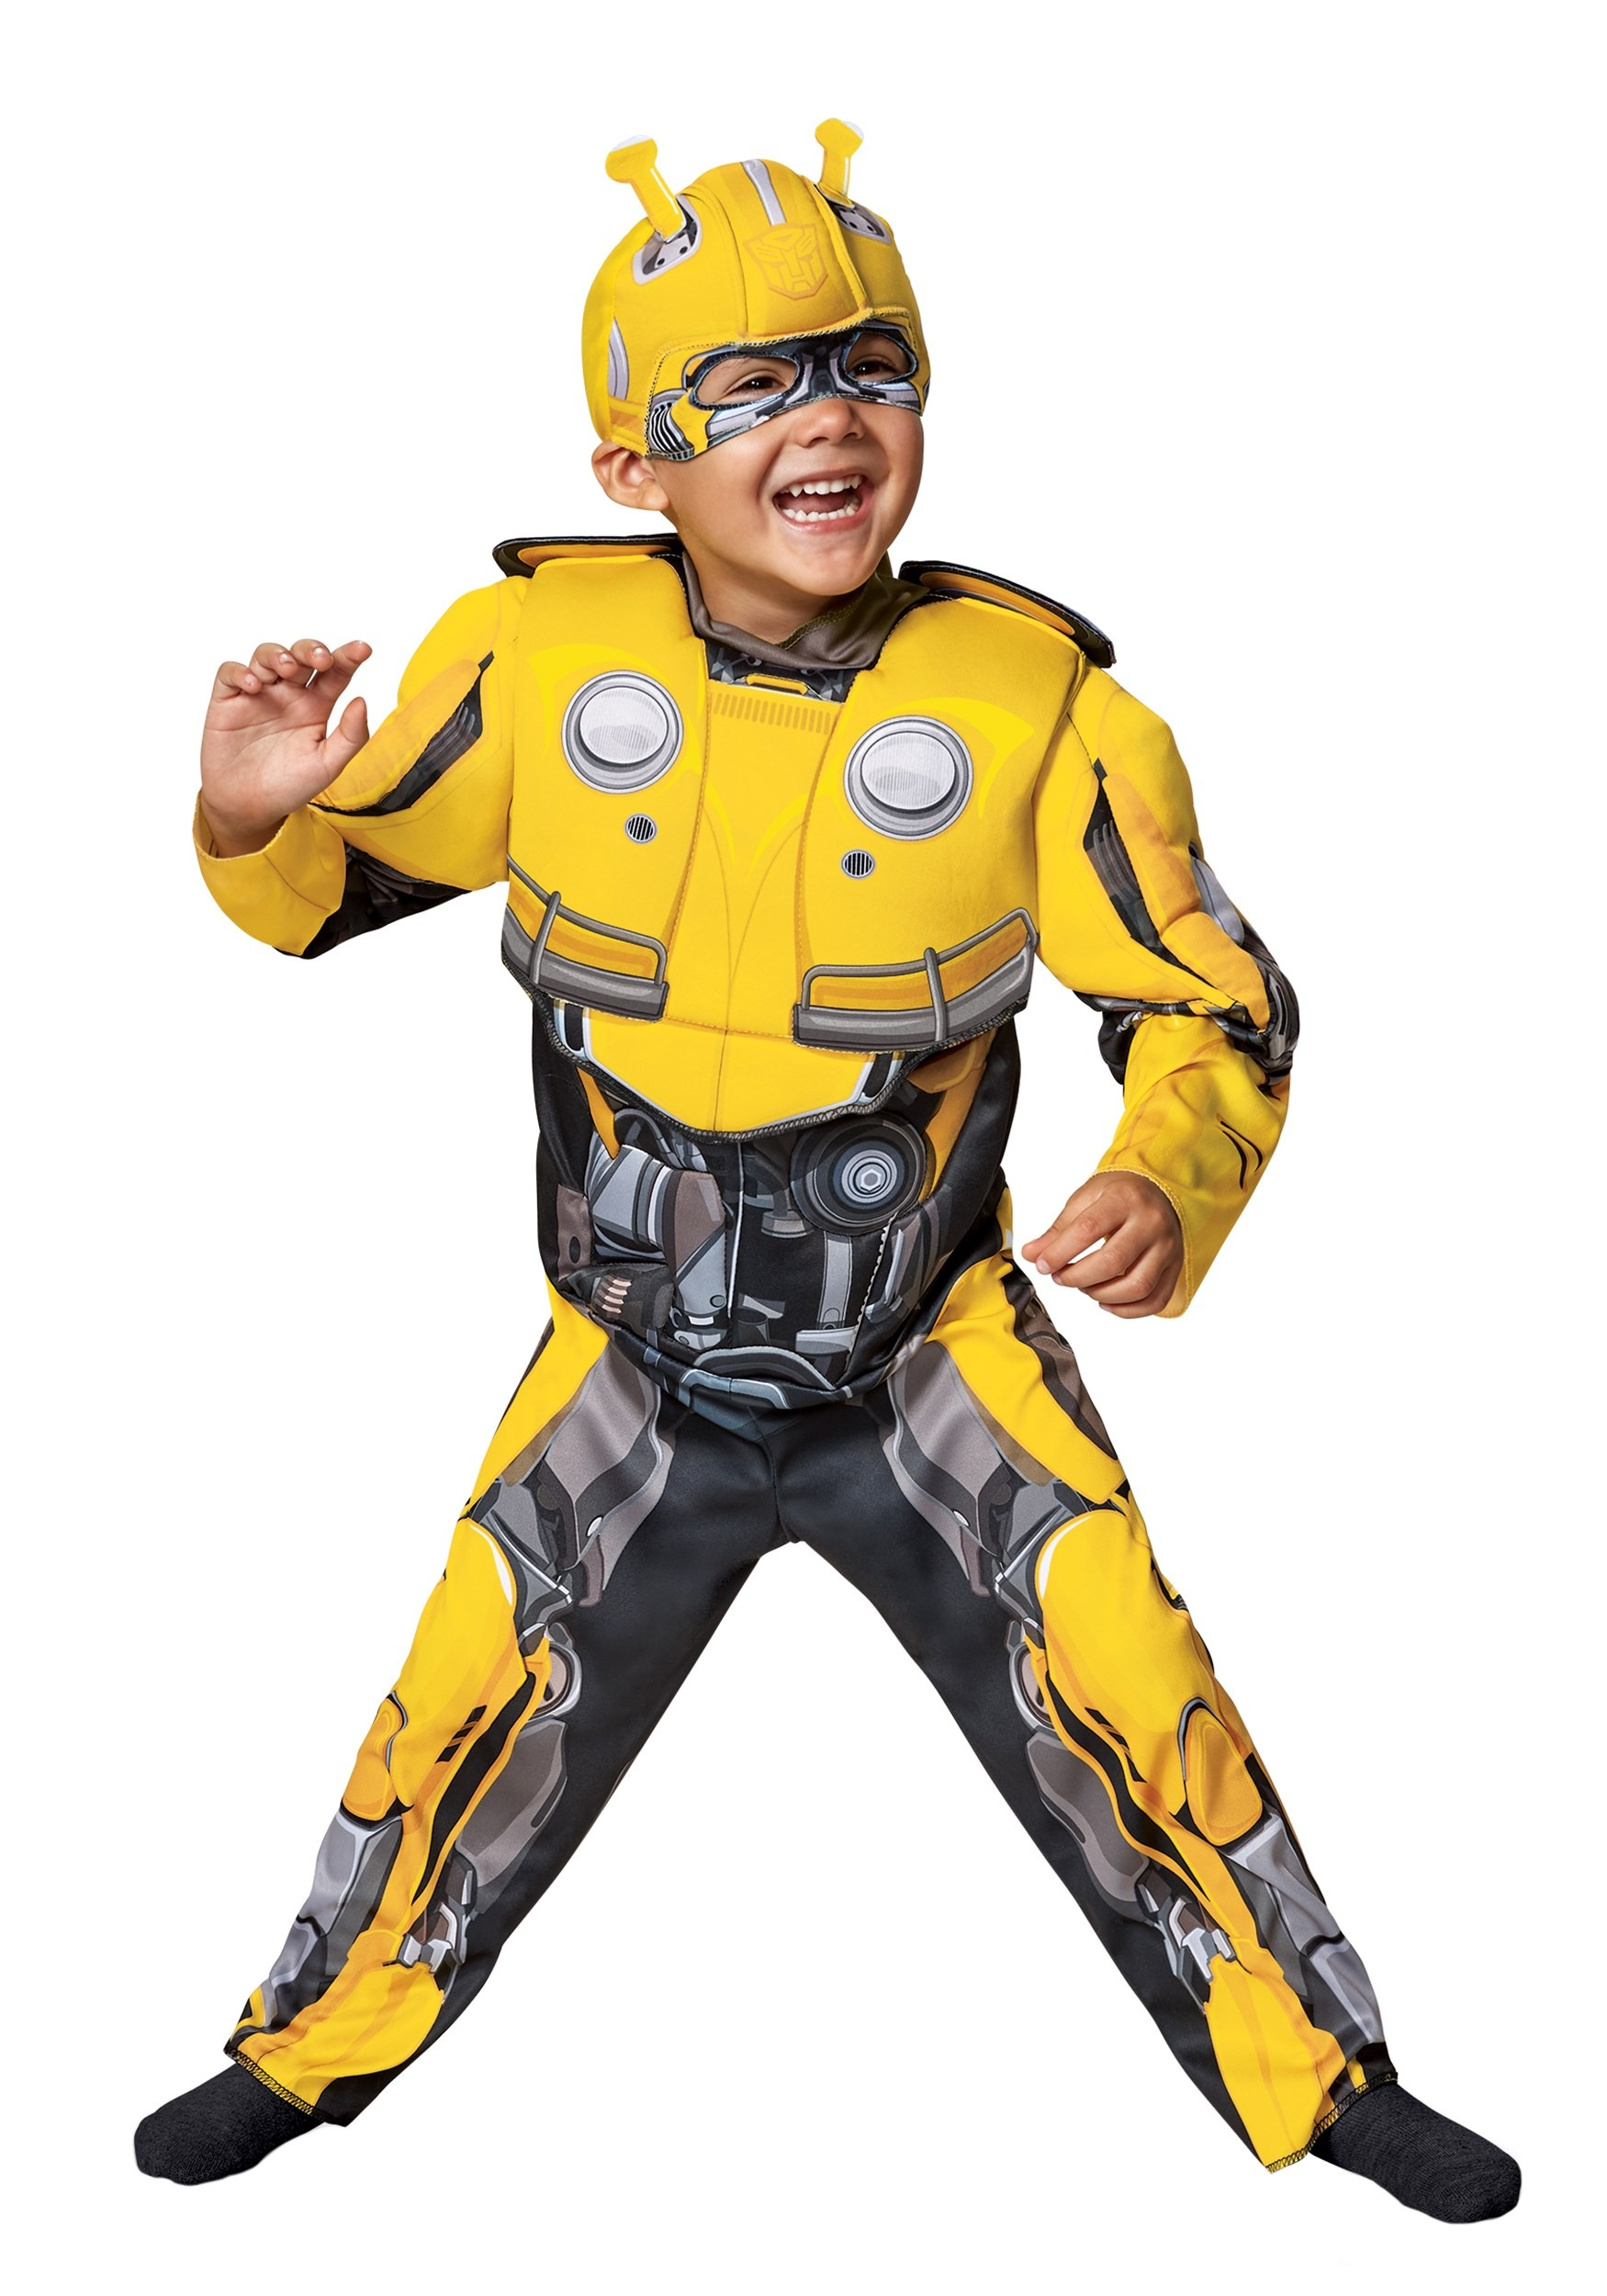 Bumble Bee Transformer Costume Toddler Bumblebee Movi...